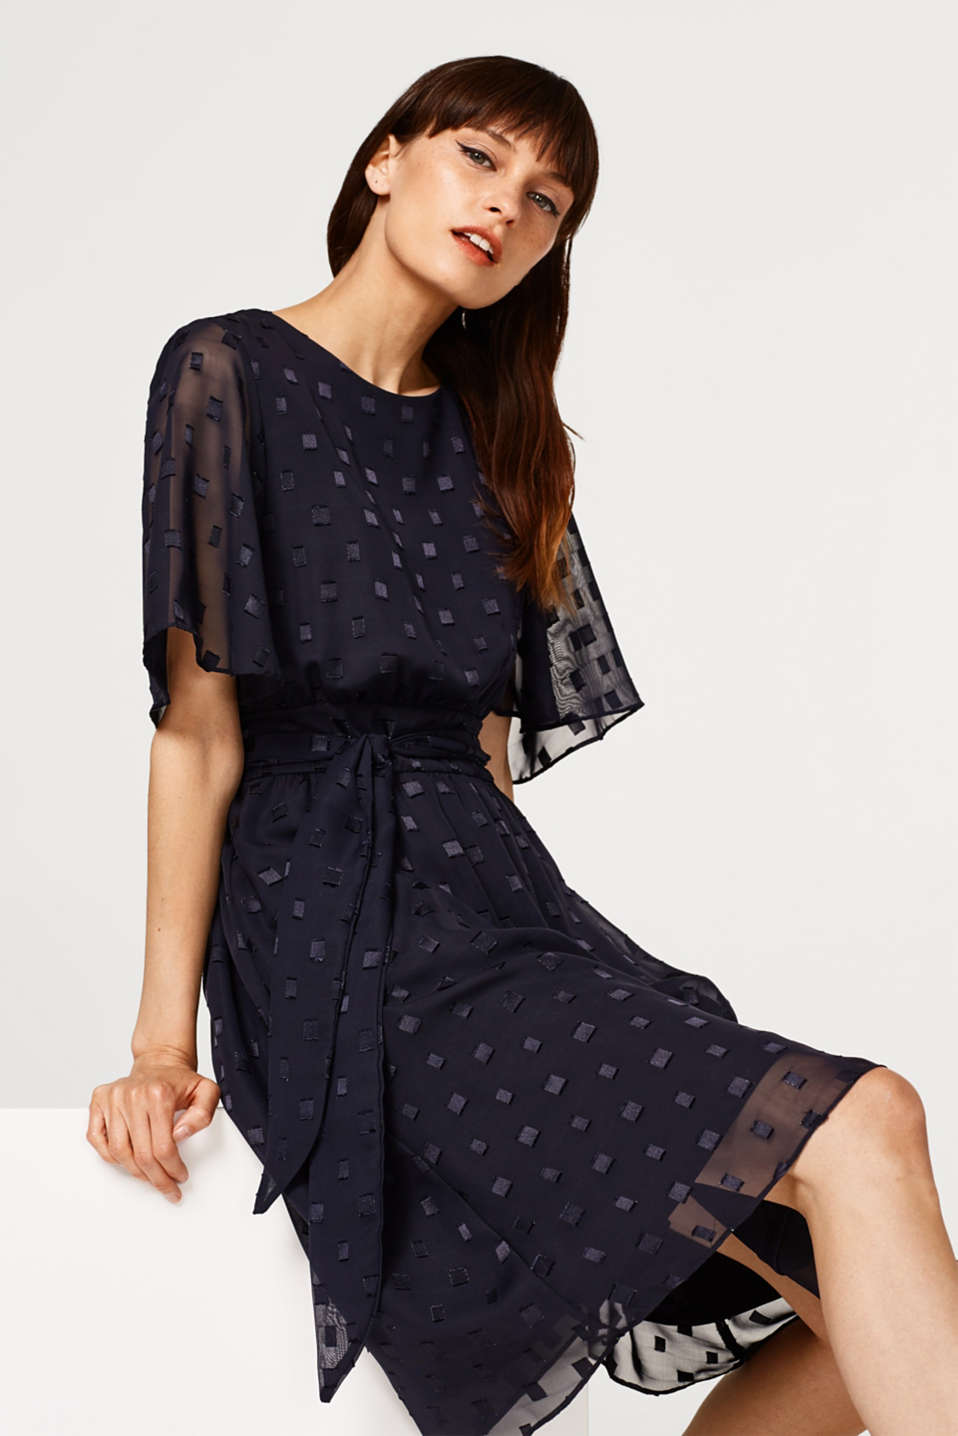 Esprit - Chiffon dress with a textured pattern and bow